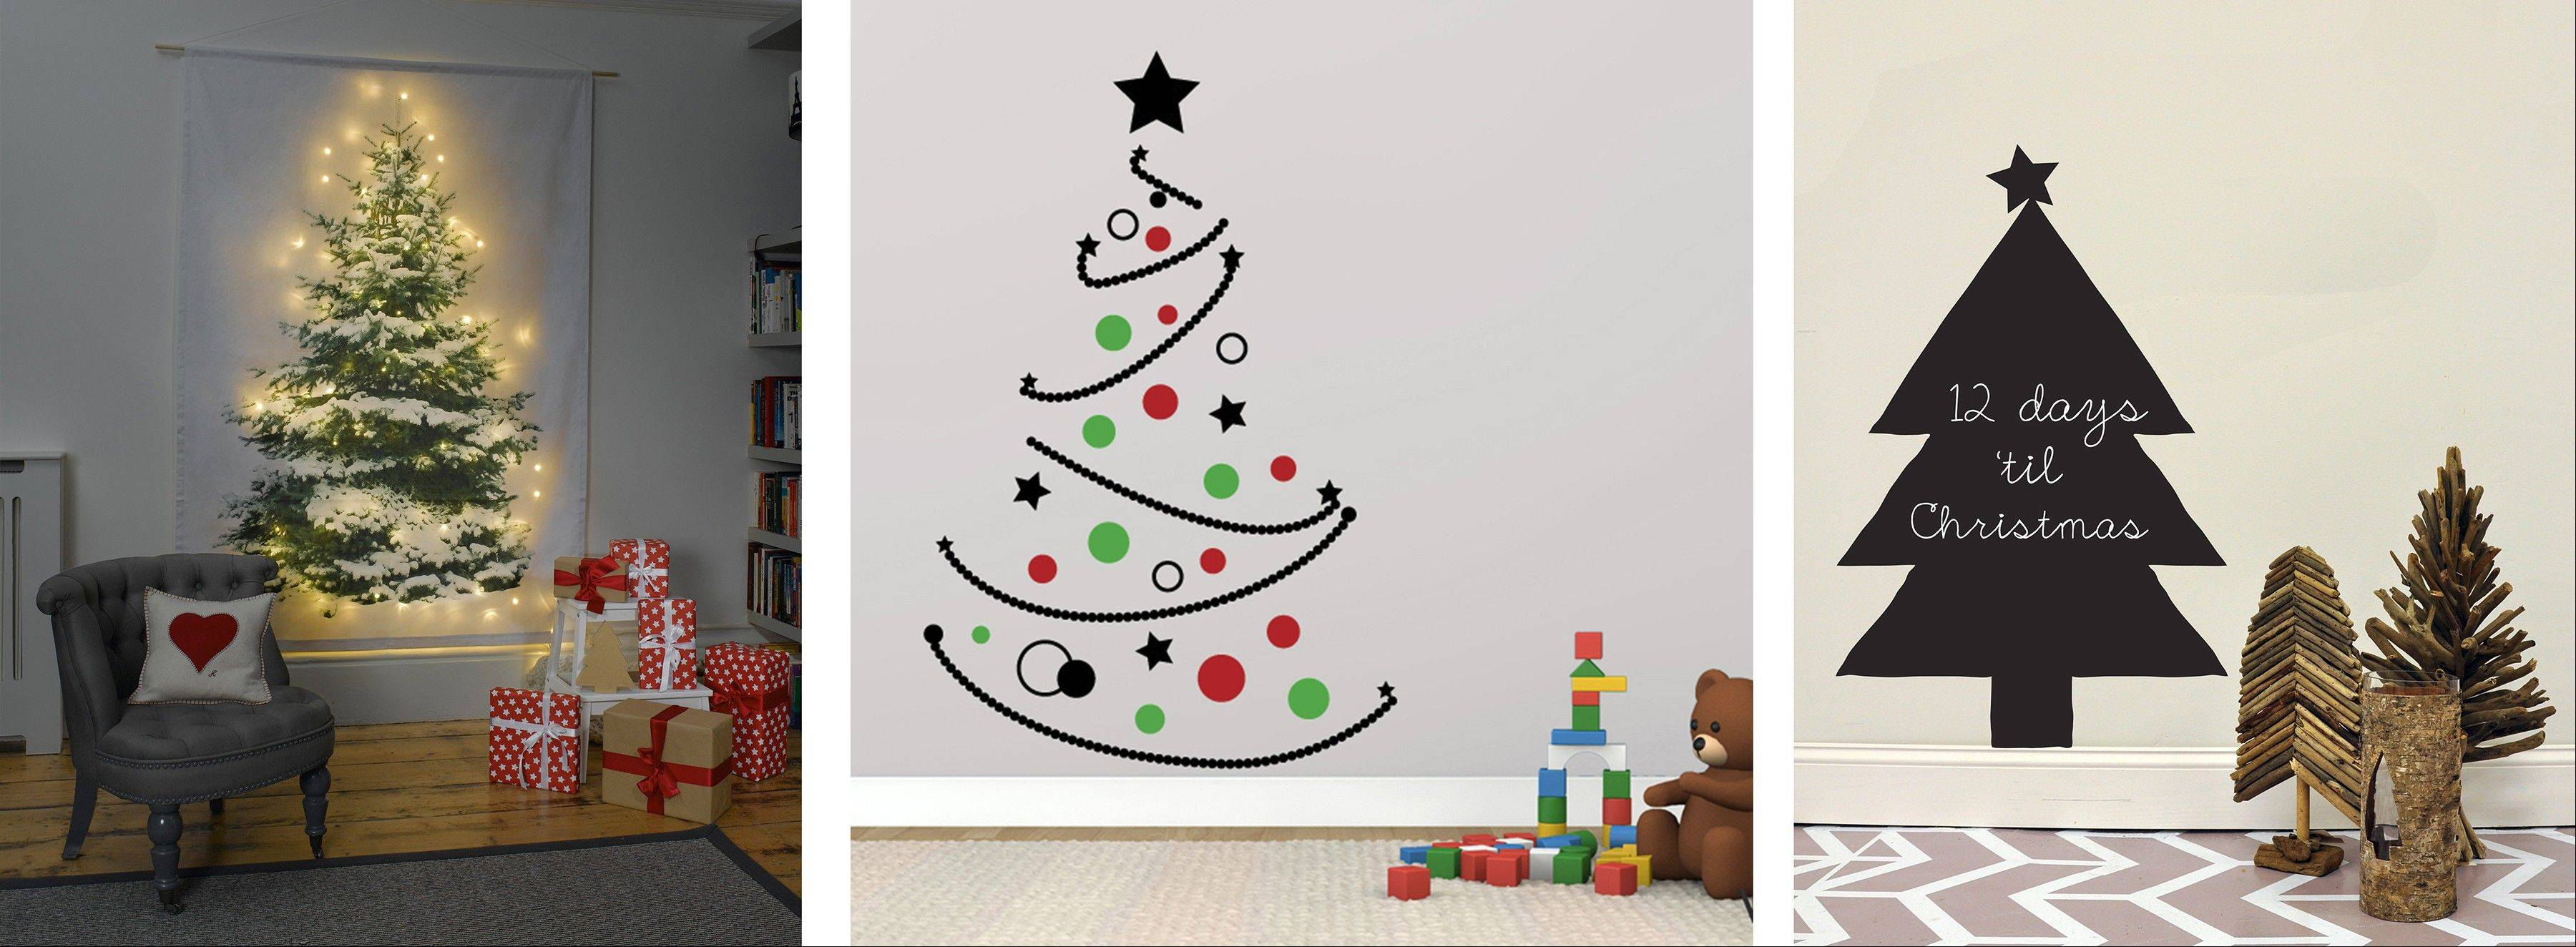 Some alternatives to traditional conifers: from left, Decorate the Tree peel-and-stick wall decals; Christmas Tree Wall Hanging from Betsy Benn Designs; and the Christmas Tree Chalkboard.